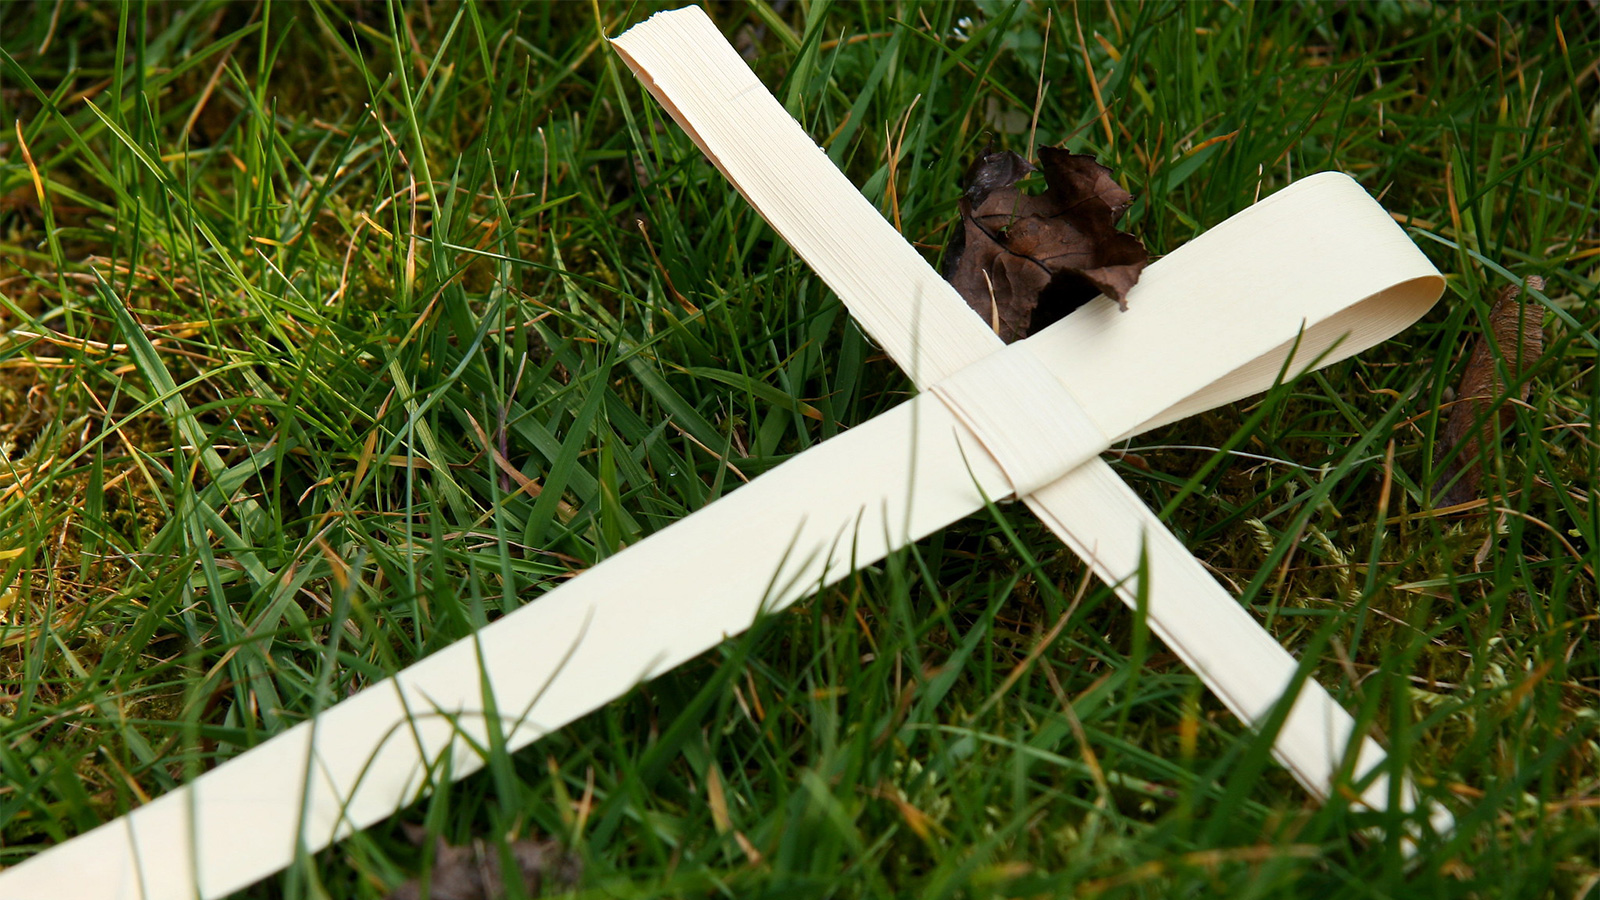 A palm leaf woven into a cross, lying on some grass.